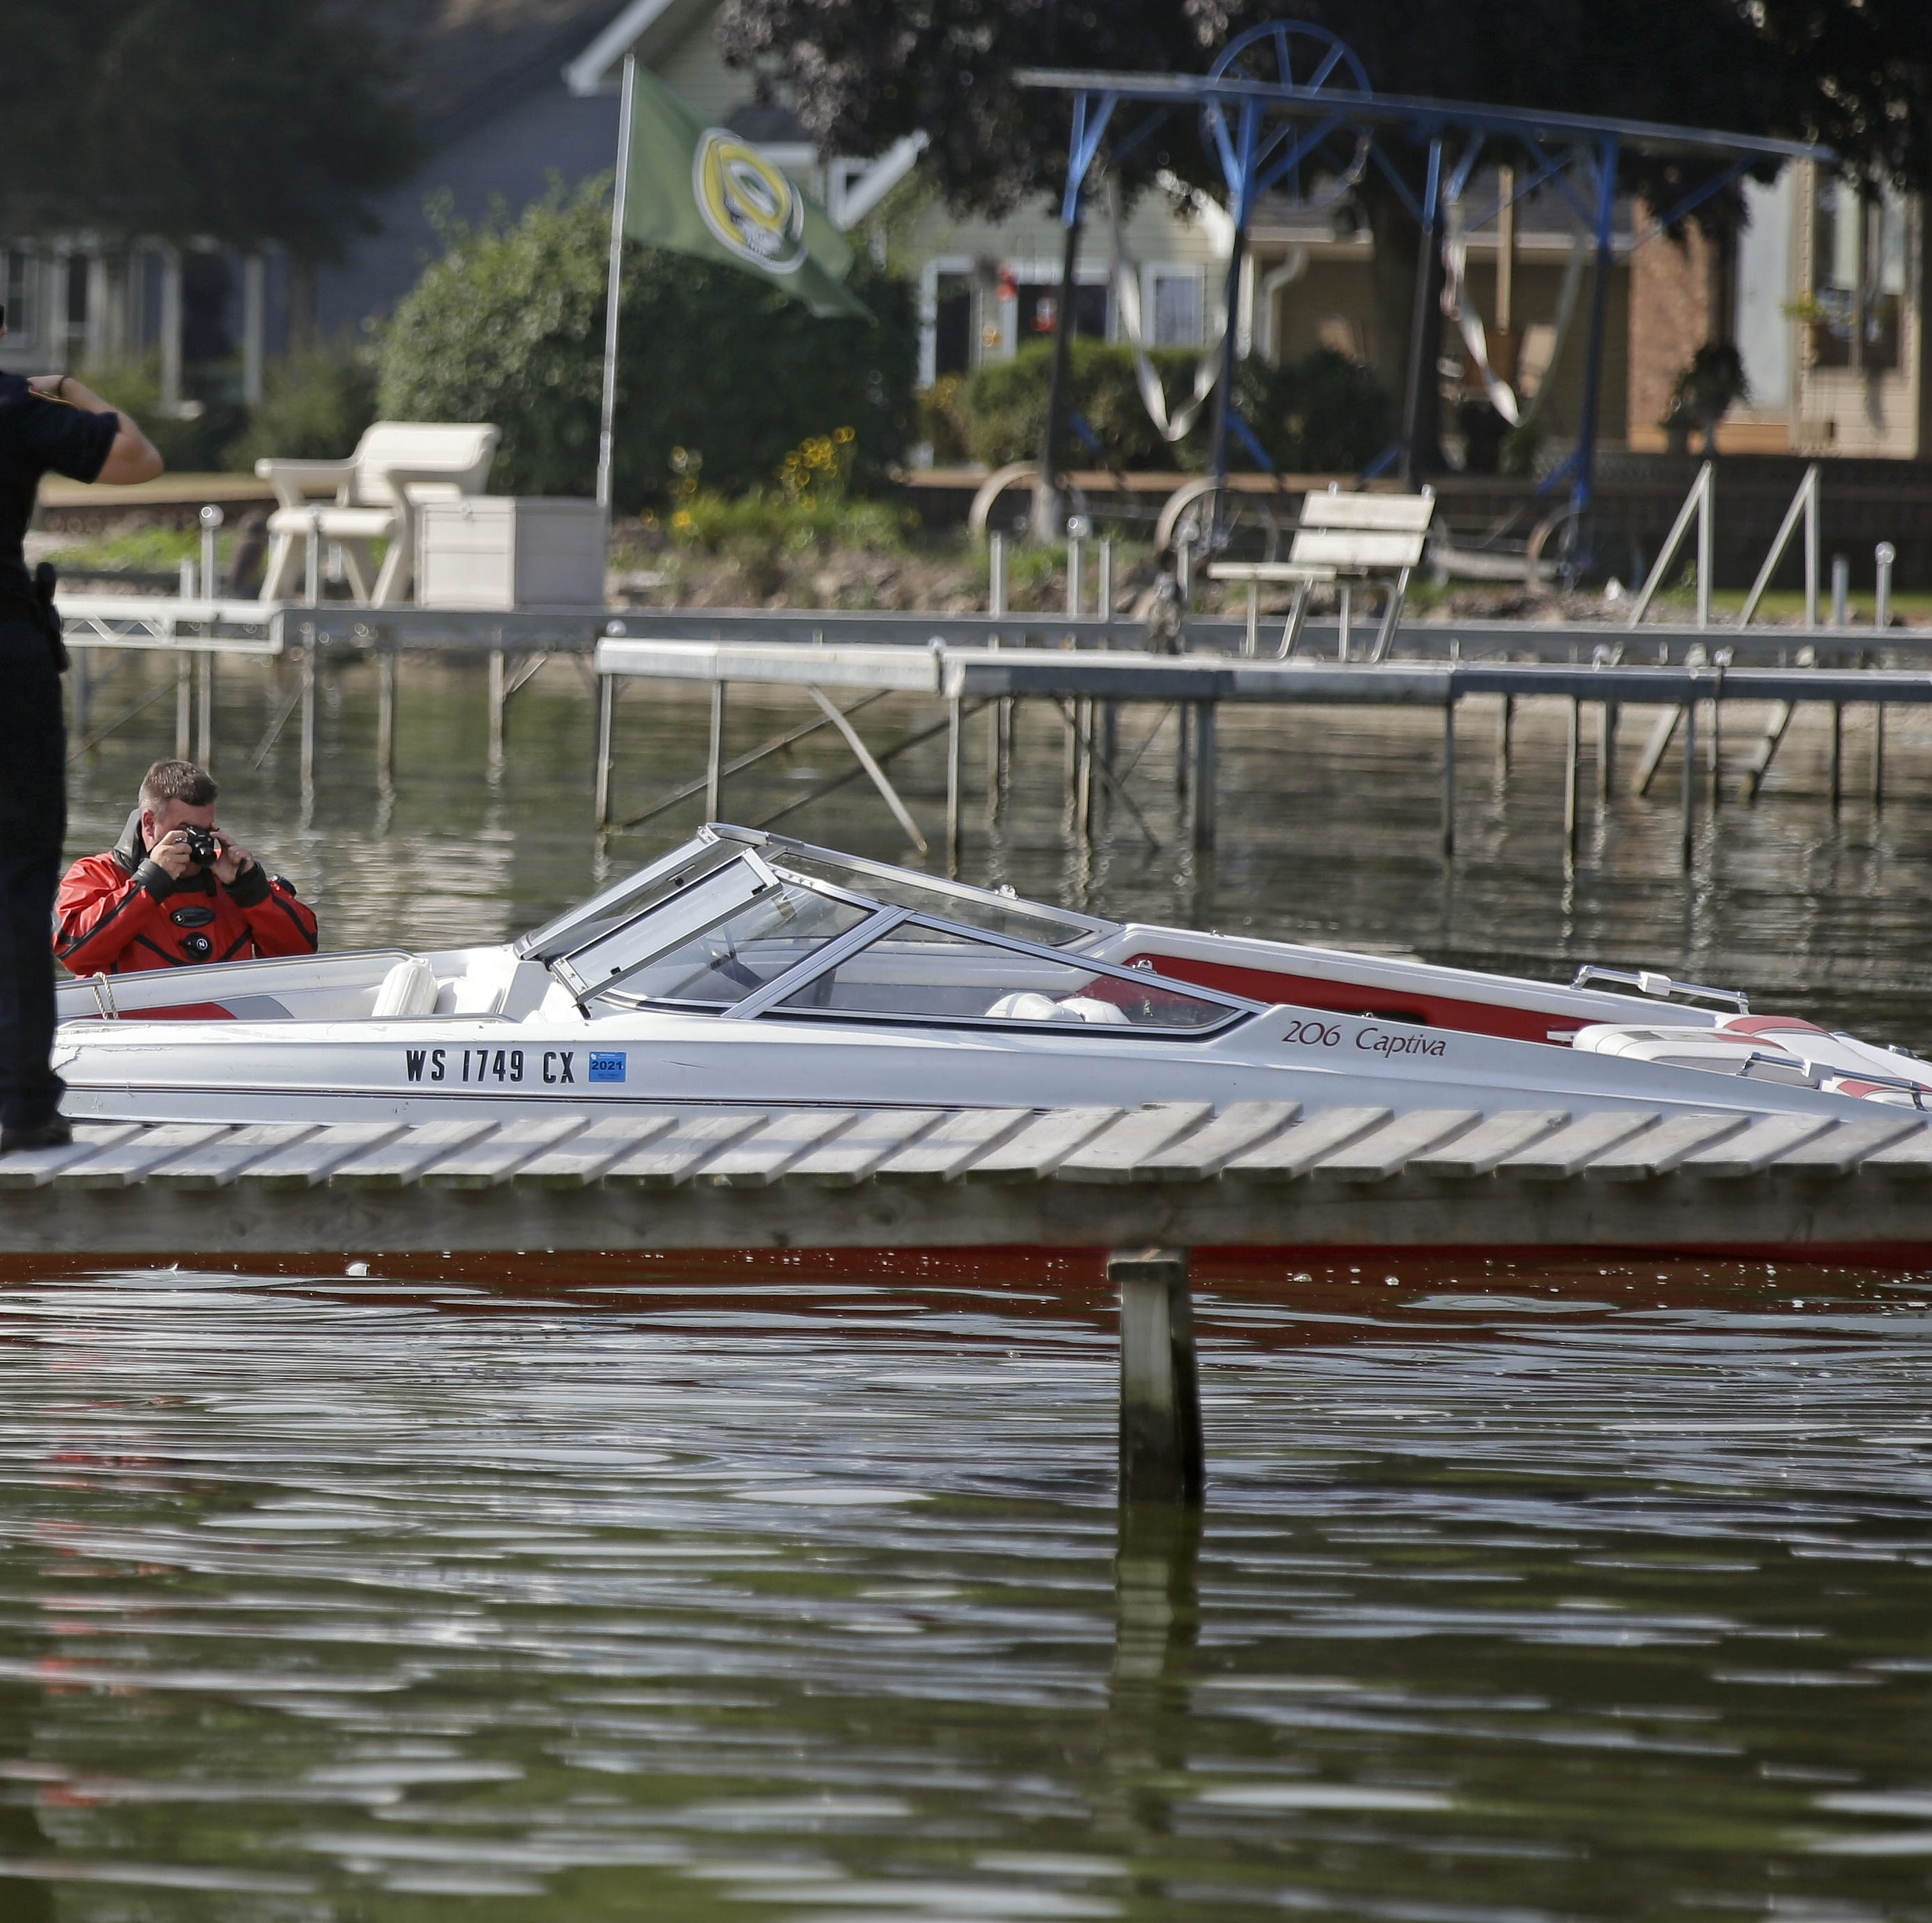 Jason Rippl, a member of the Winnebago County Sheriff's Department Rescue and Recovery Dive Team photographs a 20-foot Rinker Captiva boat before it is removed from Lake Winnebago Sunday near Vinland following a collision with another boat Saturday evening about a mile east of Paynes Point.